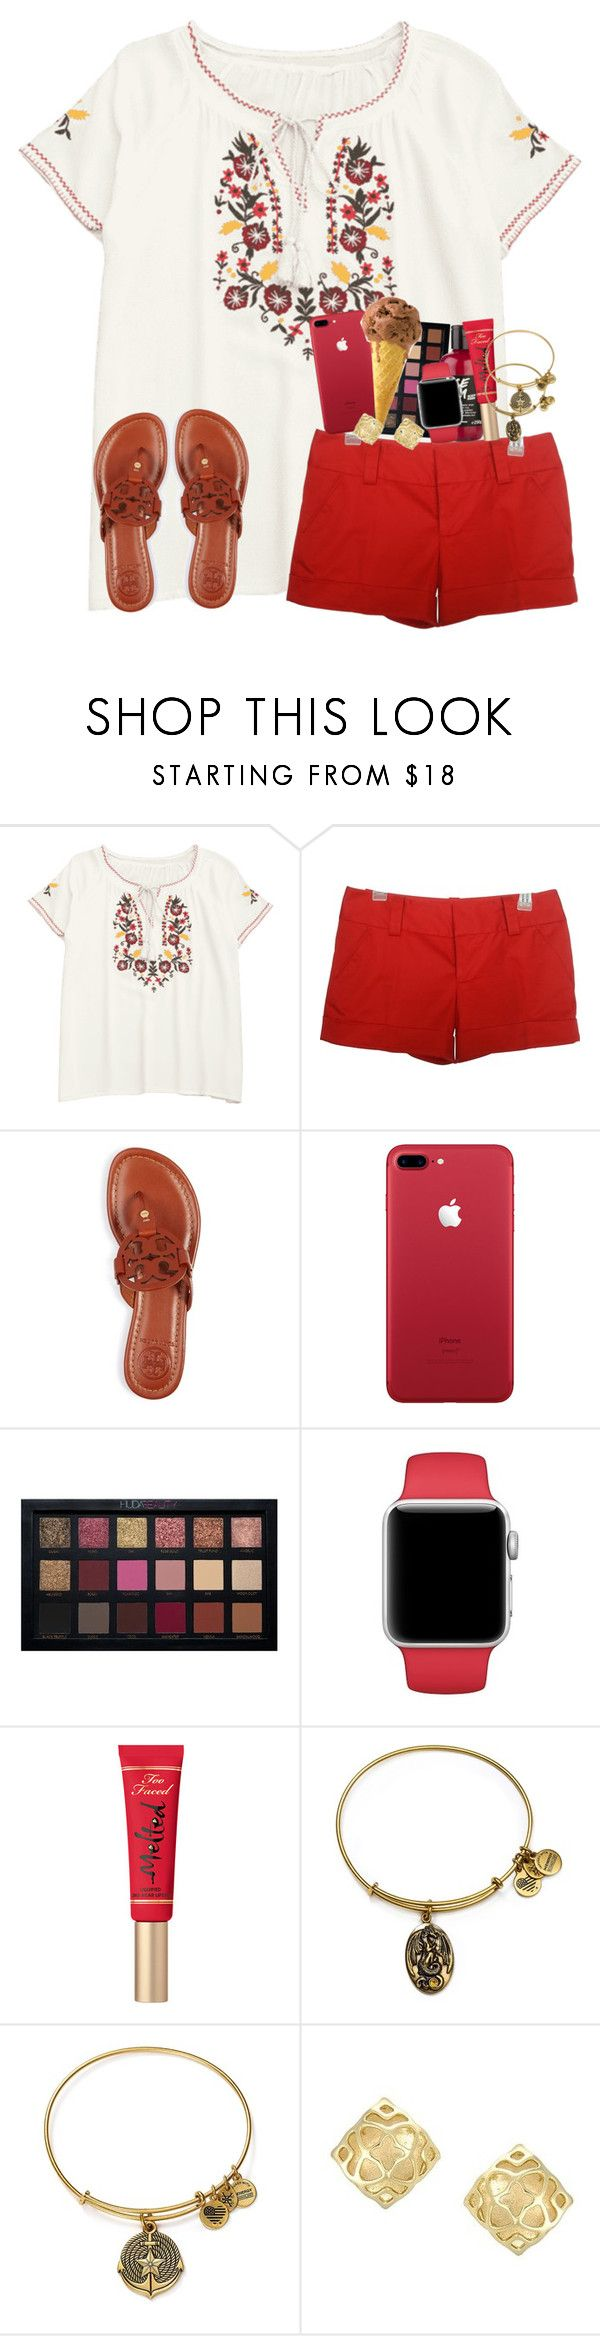 """""""""""the carousel never stops turning"""" 🎠 - mer"""" by karinaceleste ❤ liked on Polyvore featuring Alice + Olivia, Tory Burch, Huda Beauty, Beauty Secrets, Too Faced Cosmetics, Alex and Ani and Kendra Scott"""